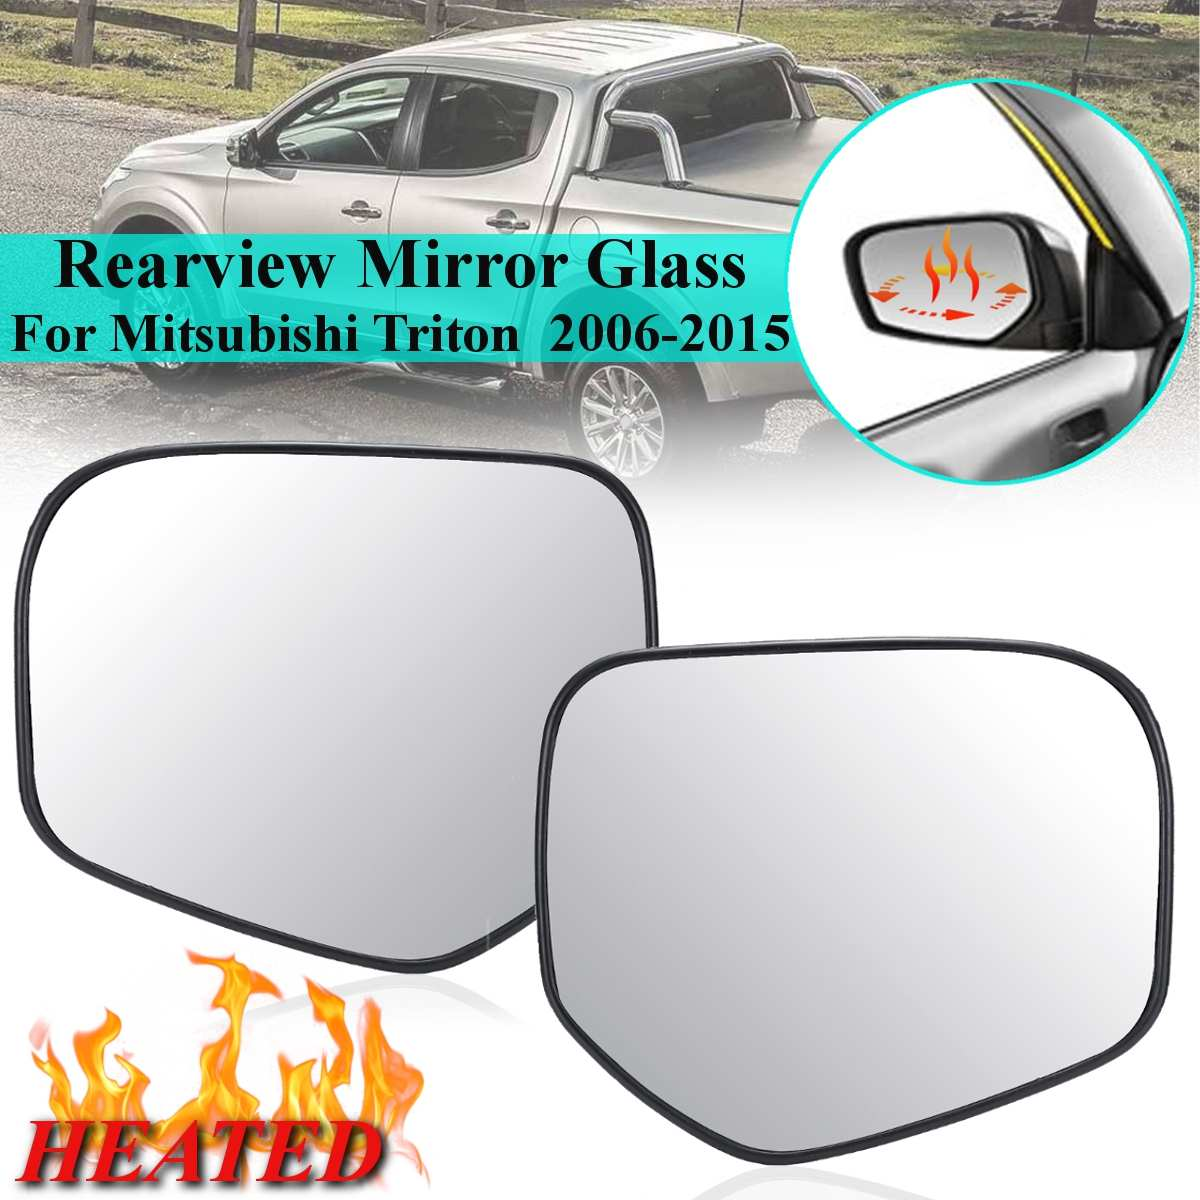 Left passegner side Silver Wing mirror glass for Citroen C4 Picasso 2008-2015